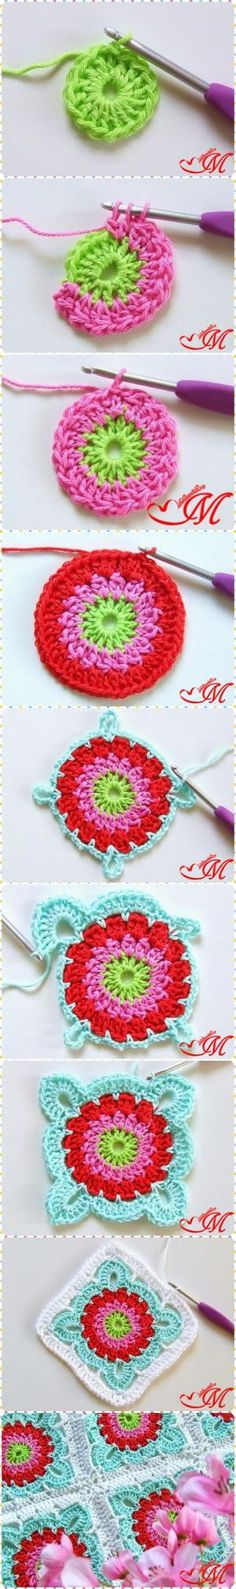 How to Crochet Pretty Granny Square Blanket with Free Pattern by Gloria Garcia